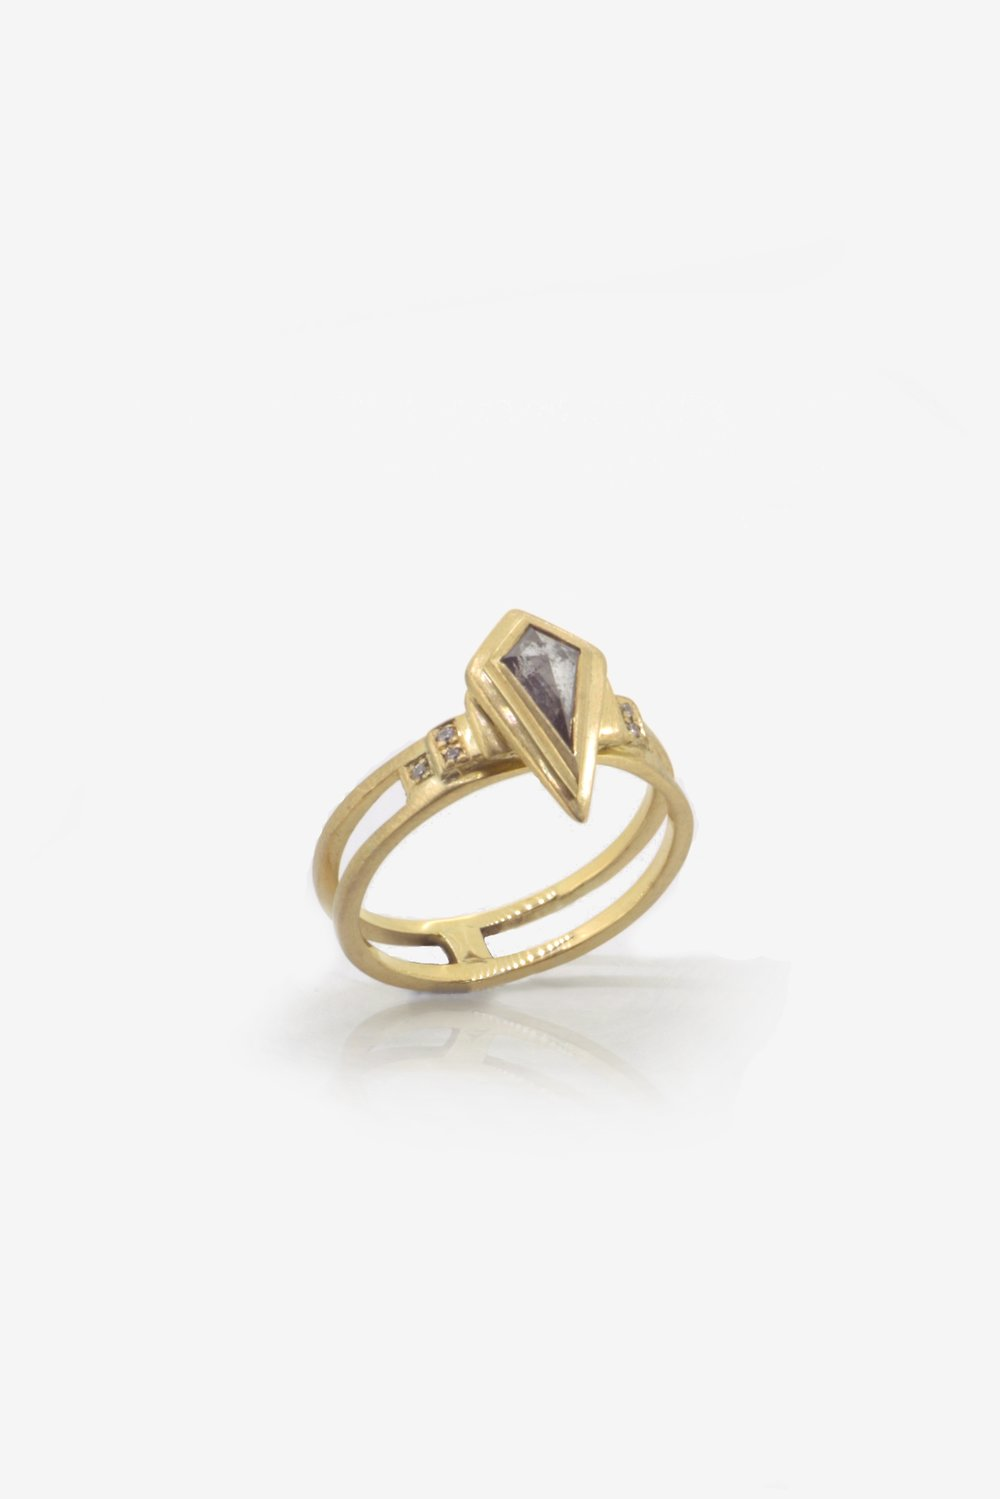 Conflict free salt pepper diamond ring in Fairtrade Gold